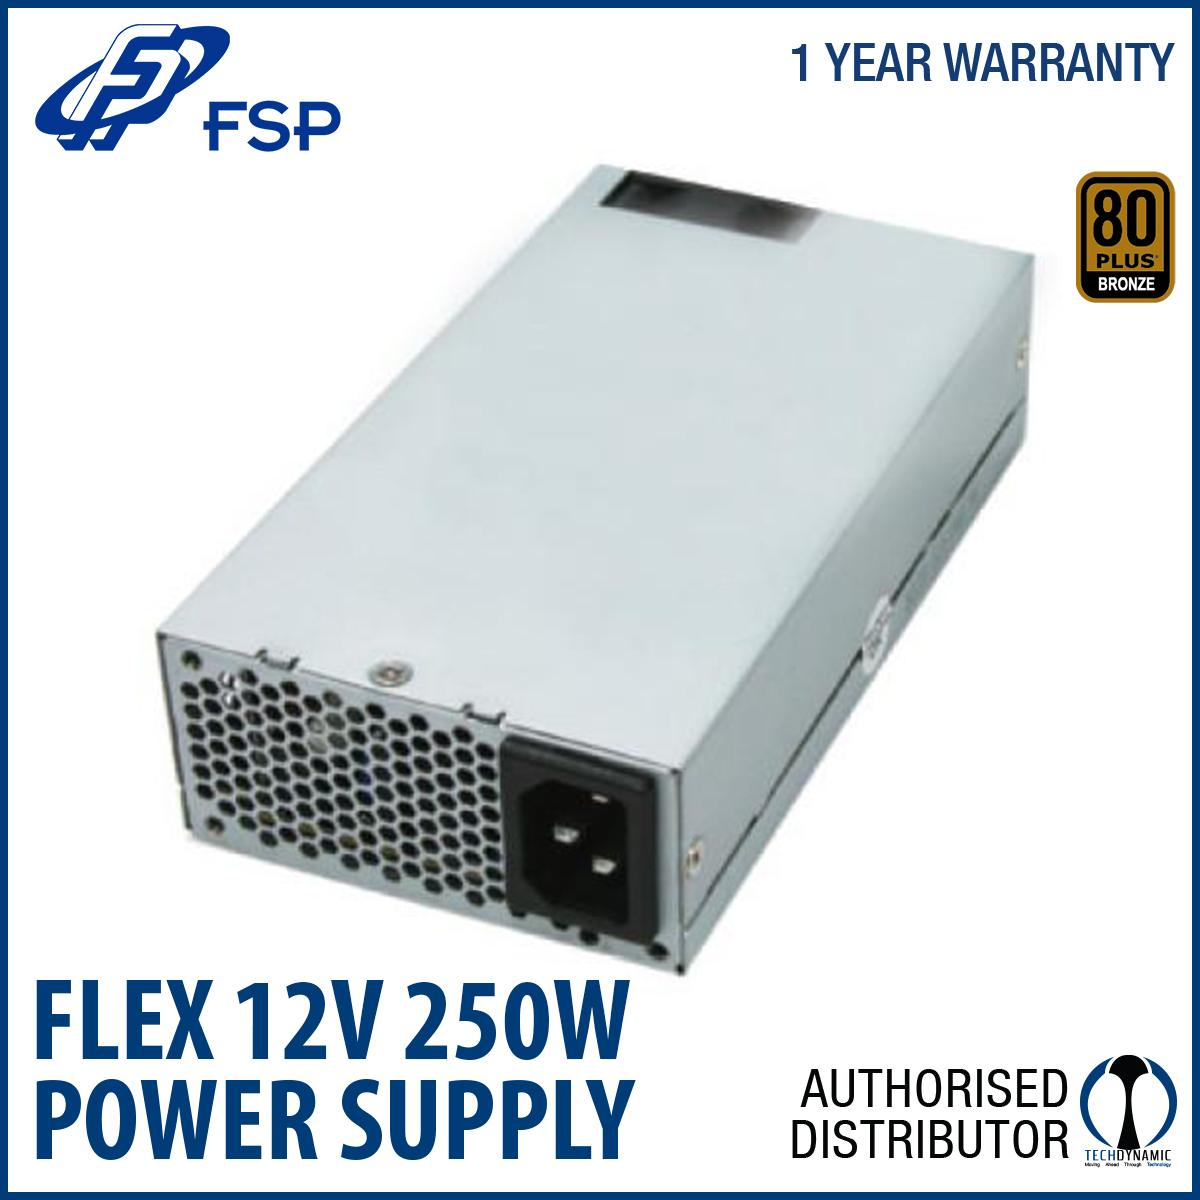 Fsp Power Supply Flex 12V250W Promo Code